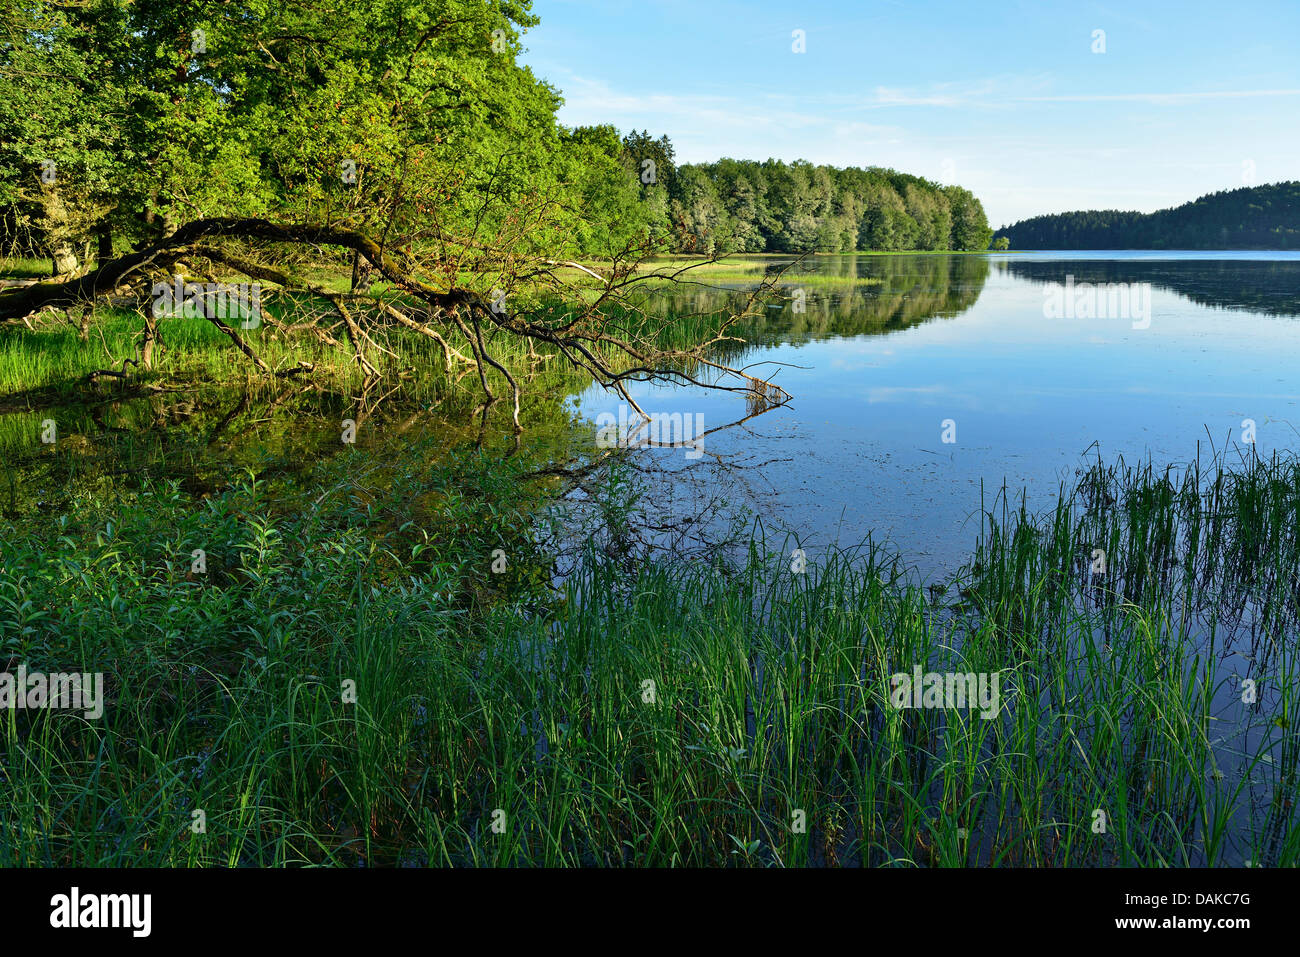 lake Moehne, Germany, North Rhine-Westphalia, Sauerland - Stock Image